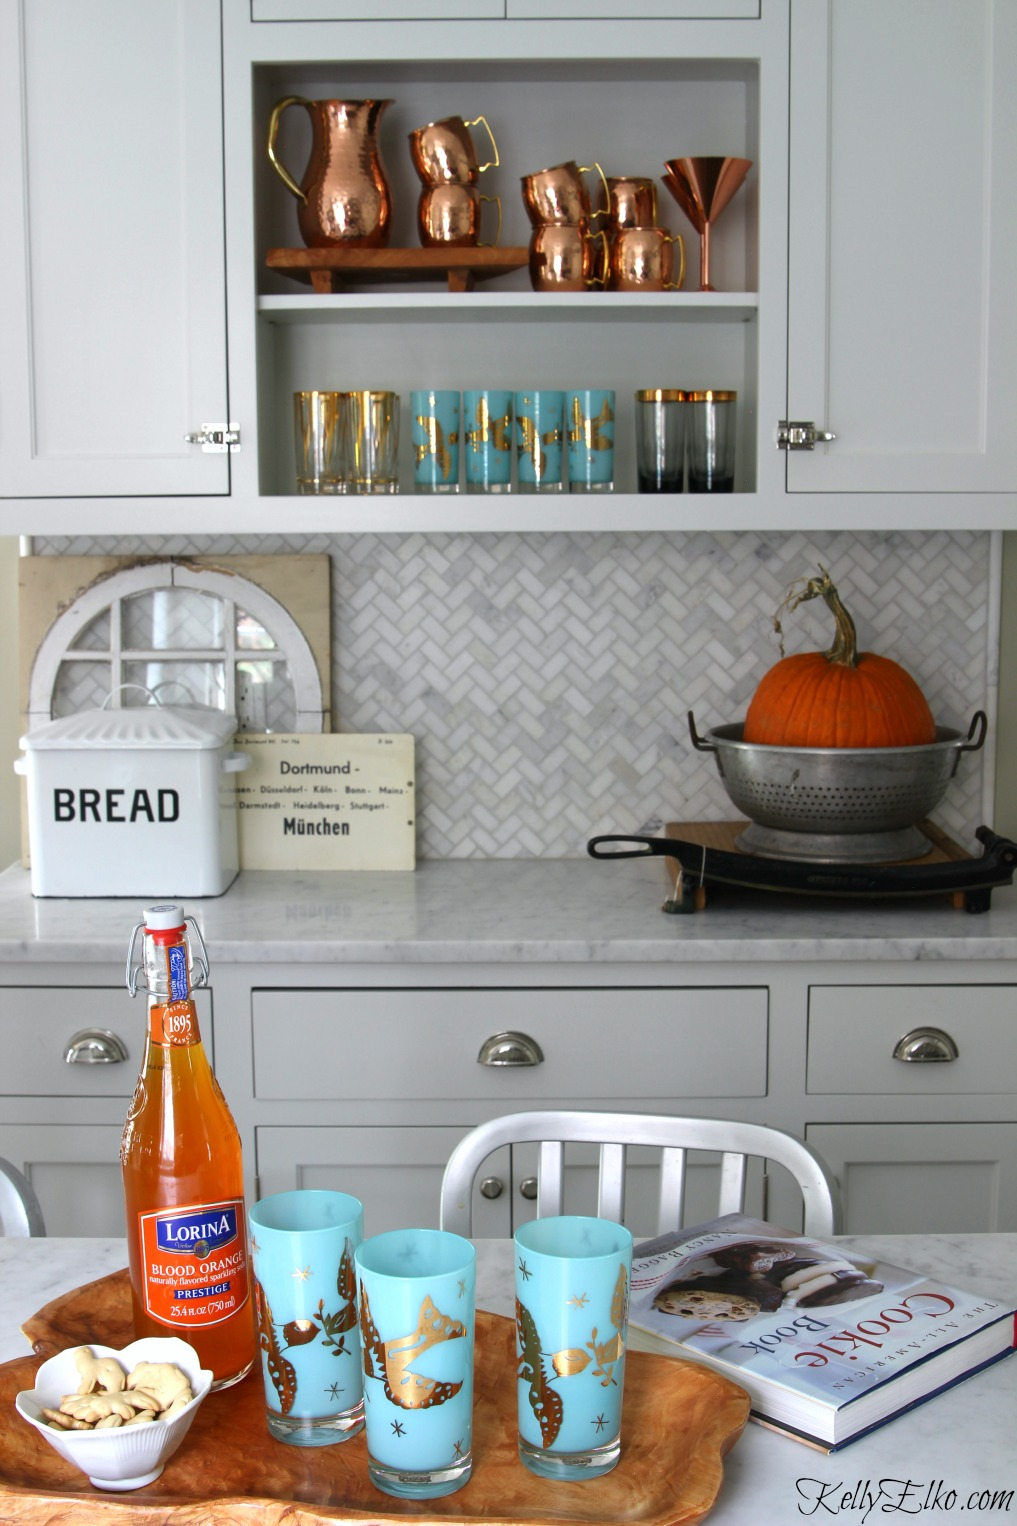 Love the open kitchen shelves with copper mugs and vintage drinking glasses on display kellyelko.com